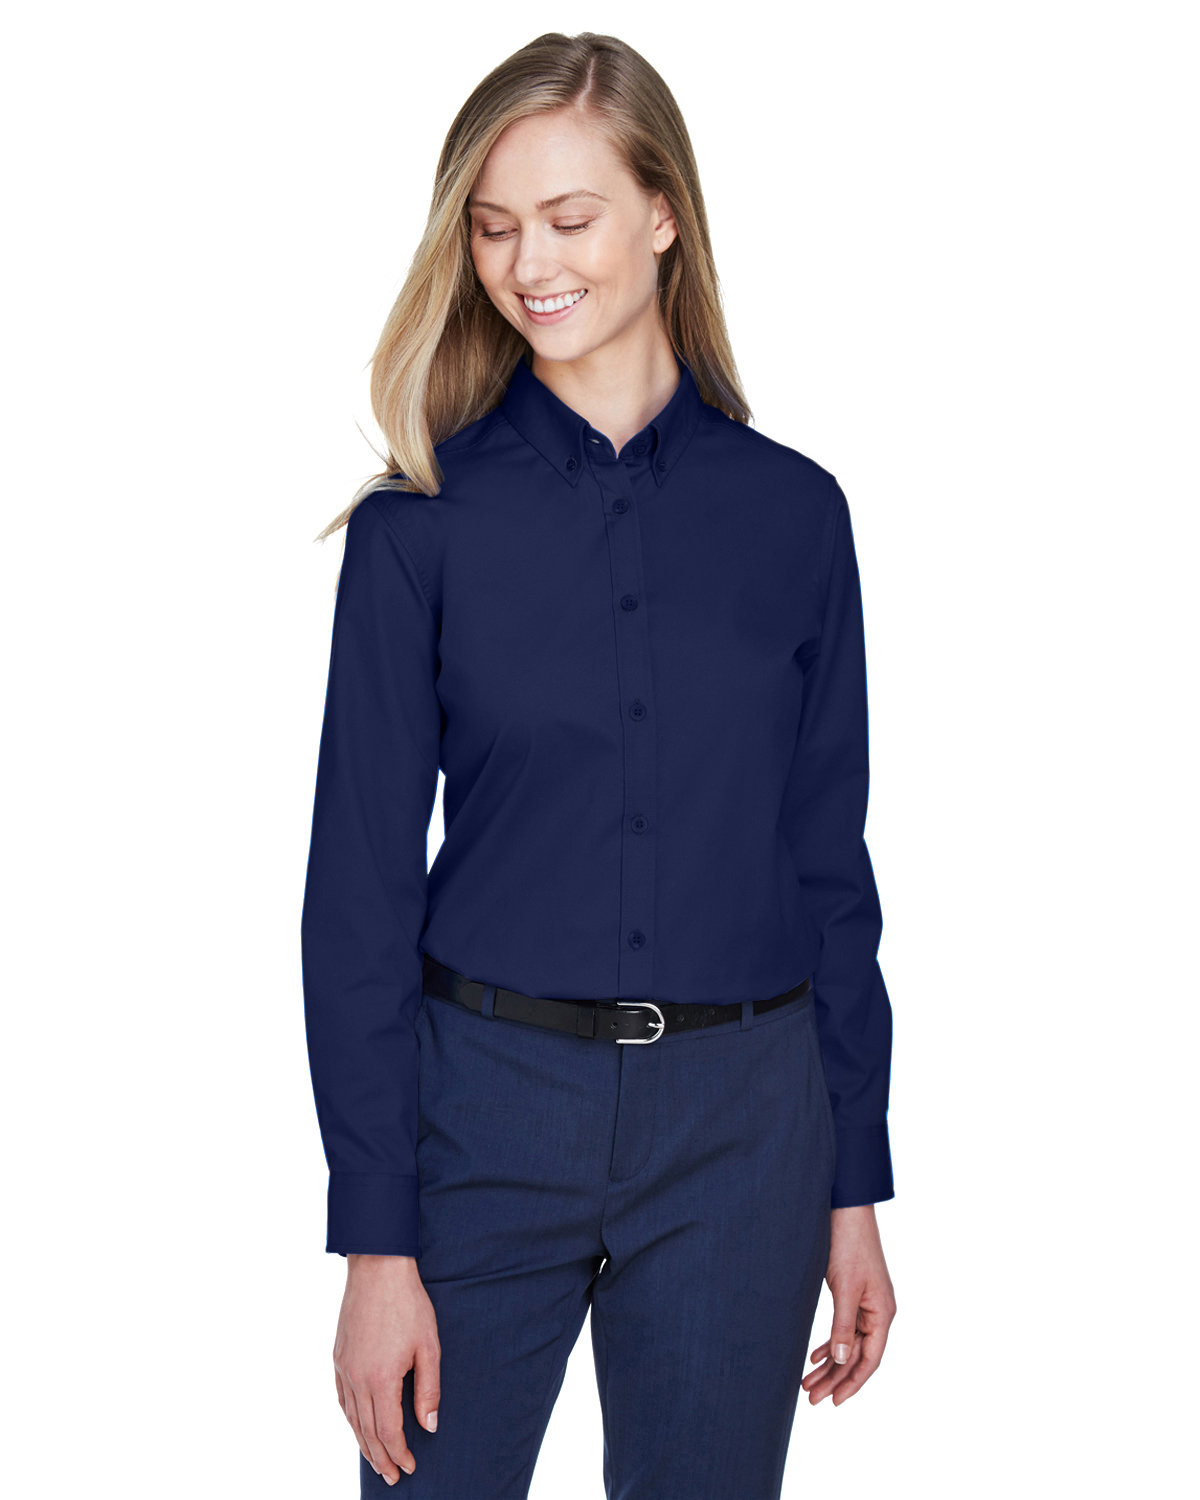 Core 365 Ladies' Operate Long-Sleeve Twill Shirt CLASSIC NAVY